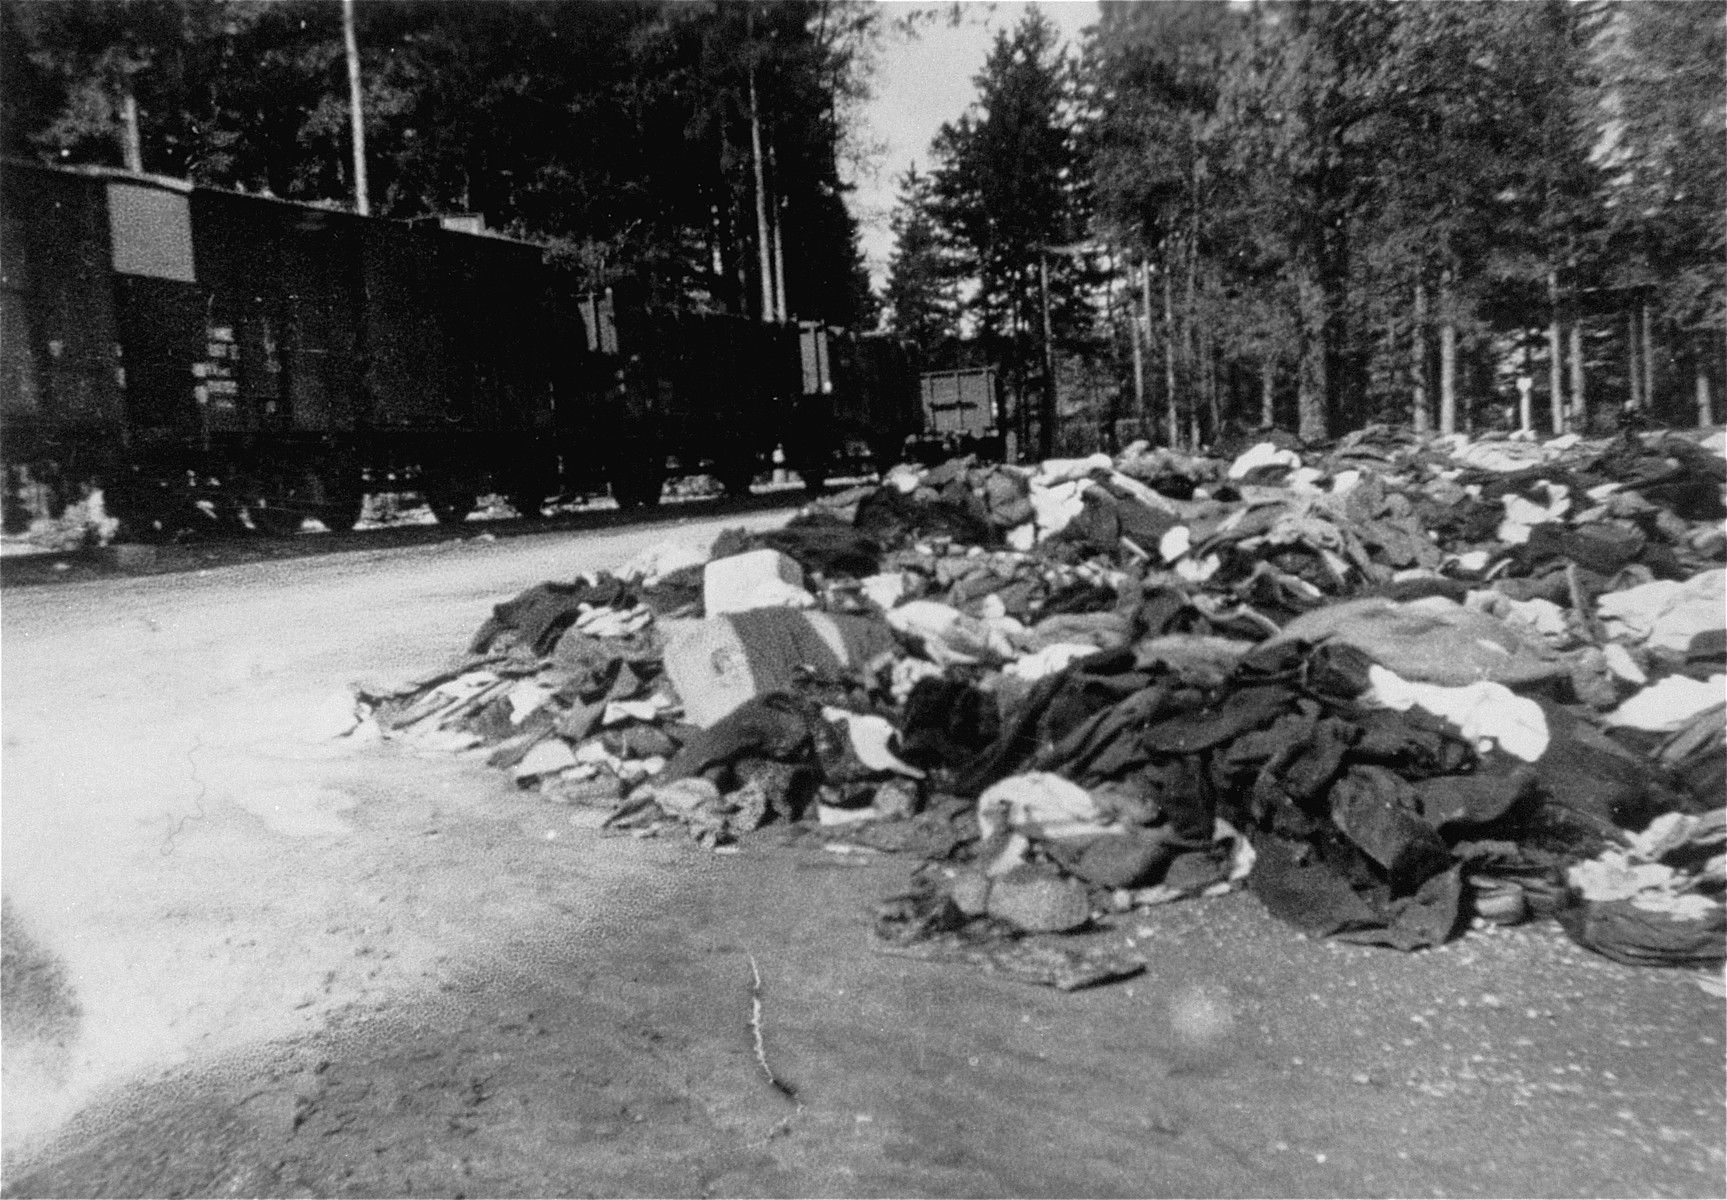 A pile of clothing stripped off of corpses found on the death train.